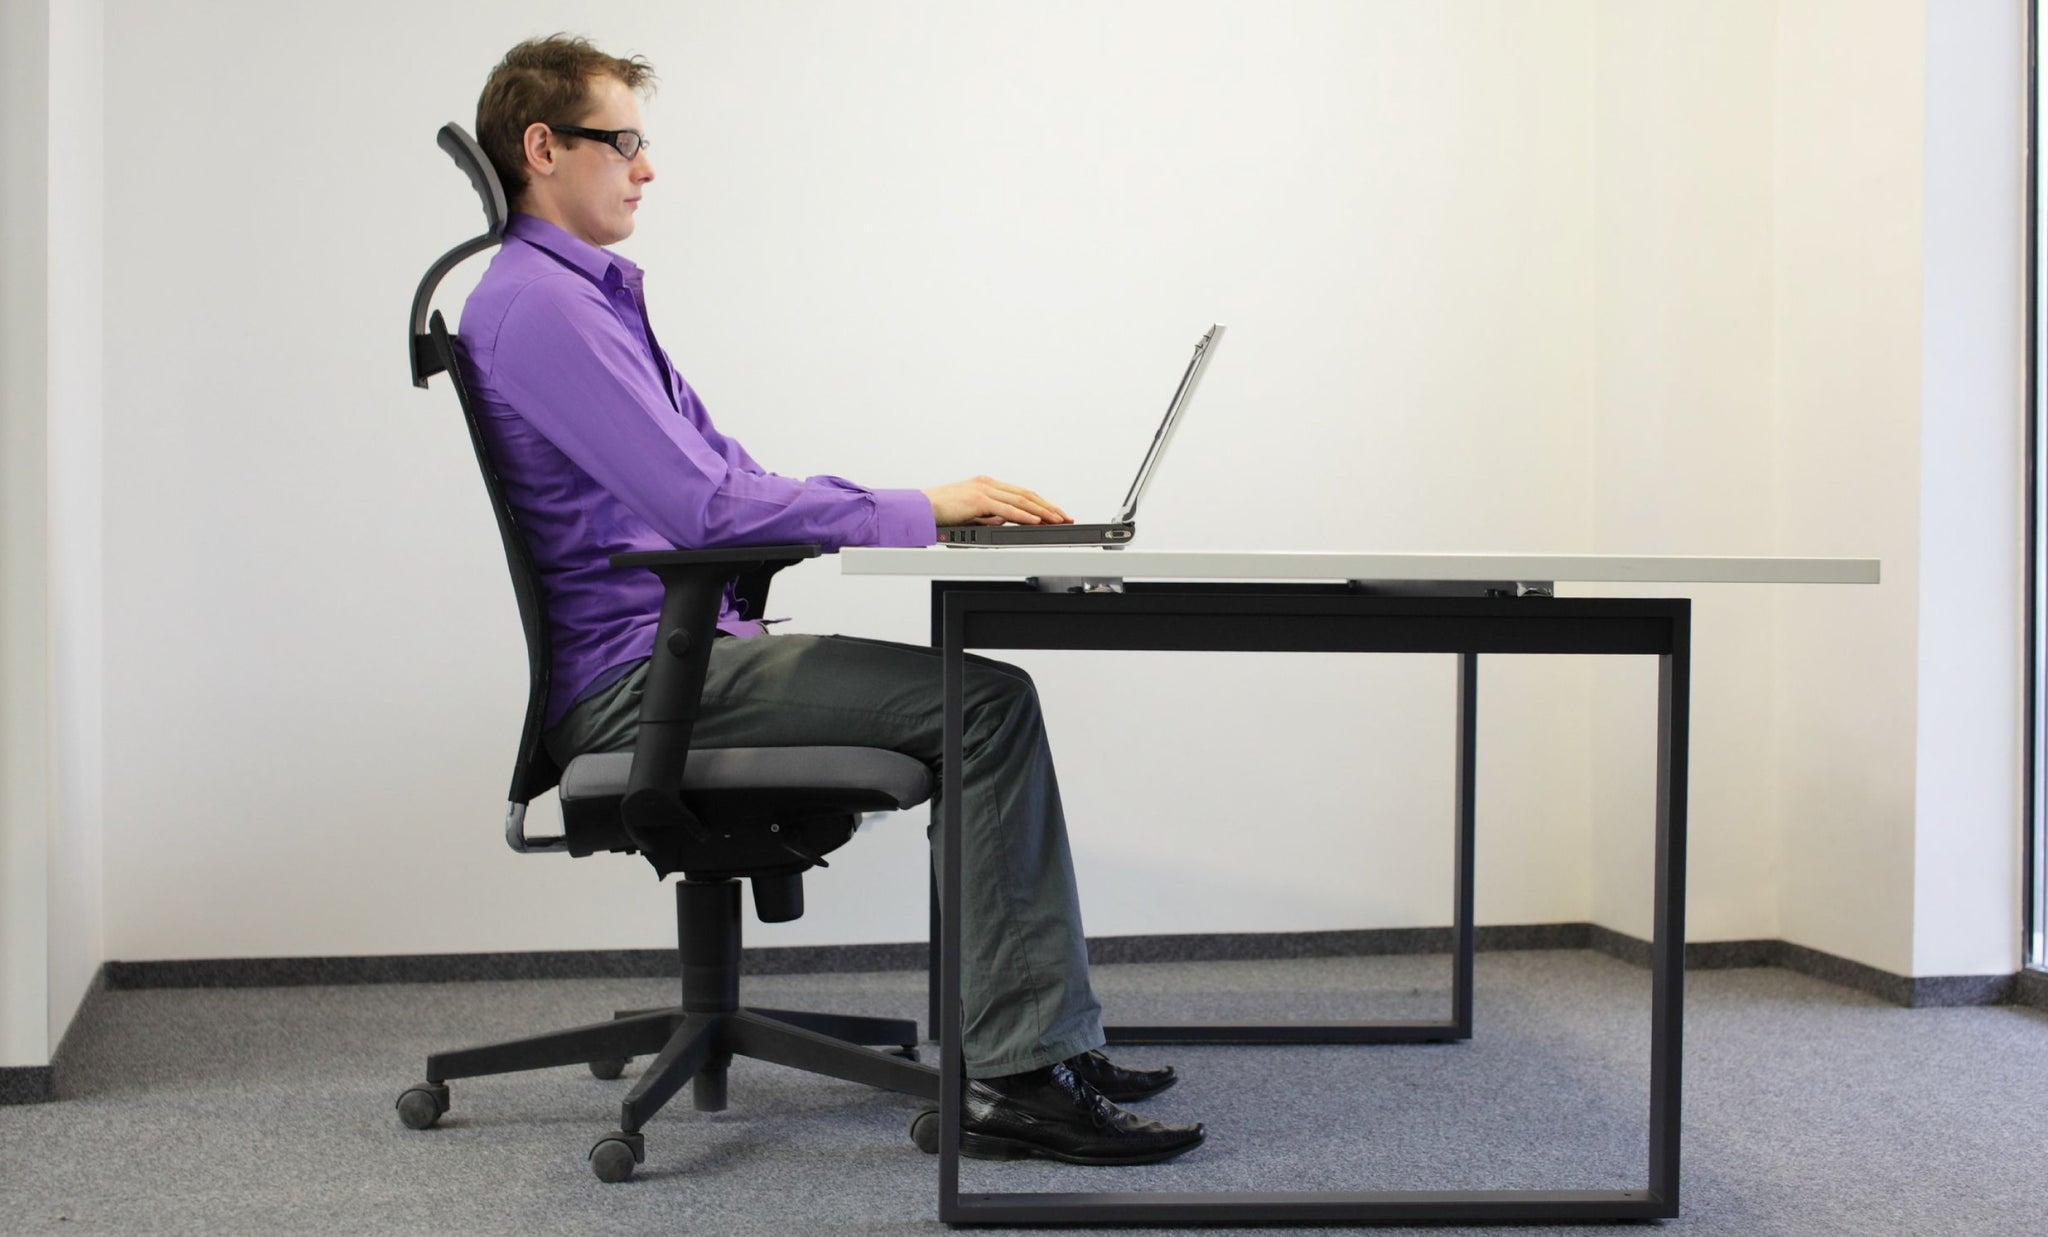 Good posture at the workspace